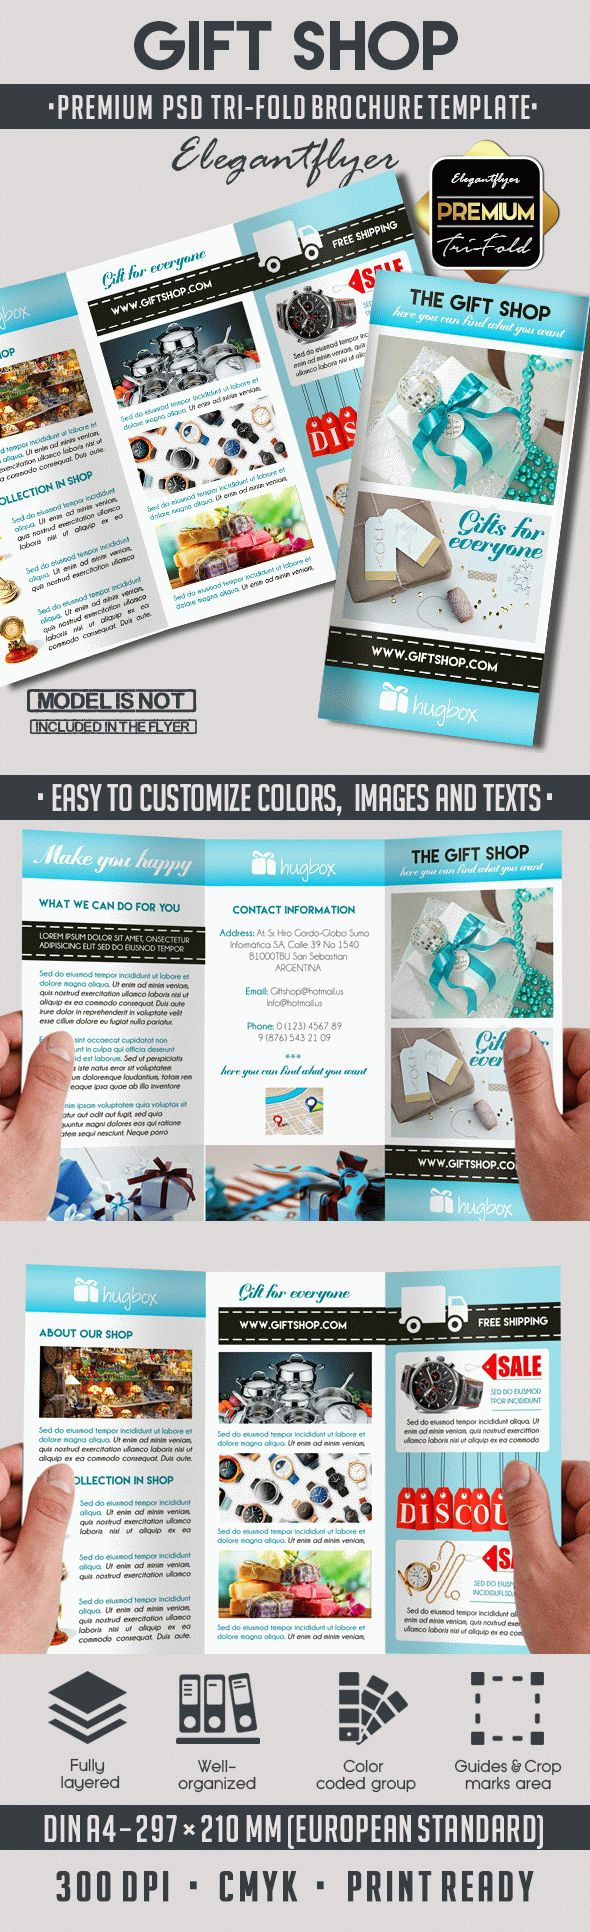 3d brochure templates psd - gift shop premium tri fold psd brochure template by